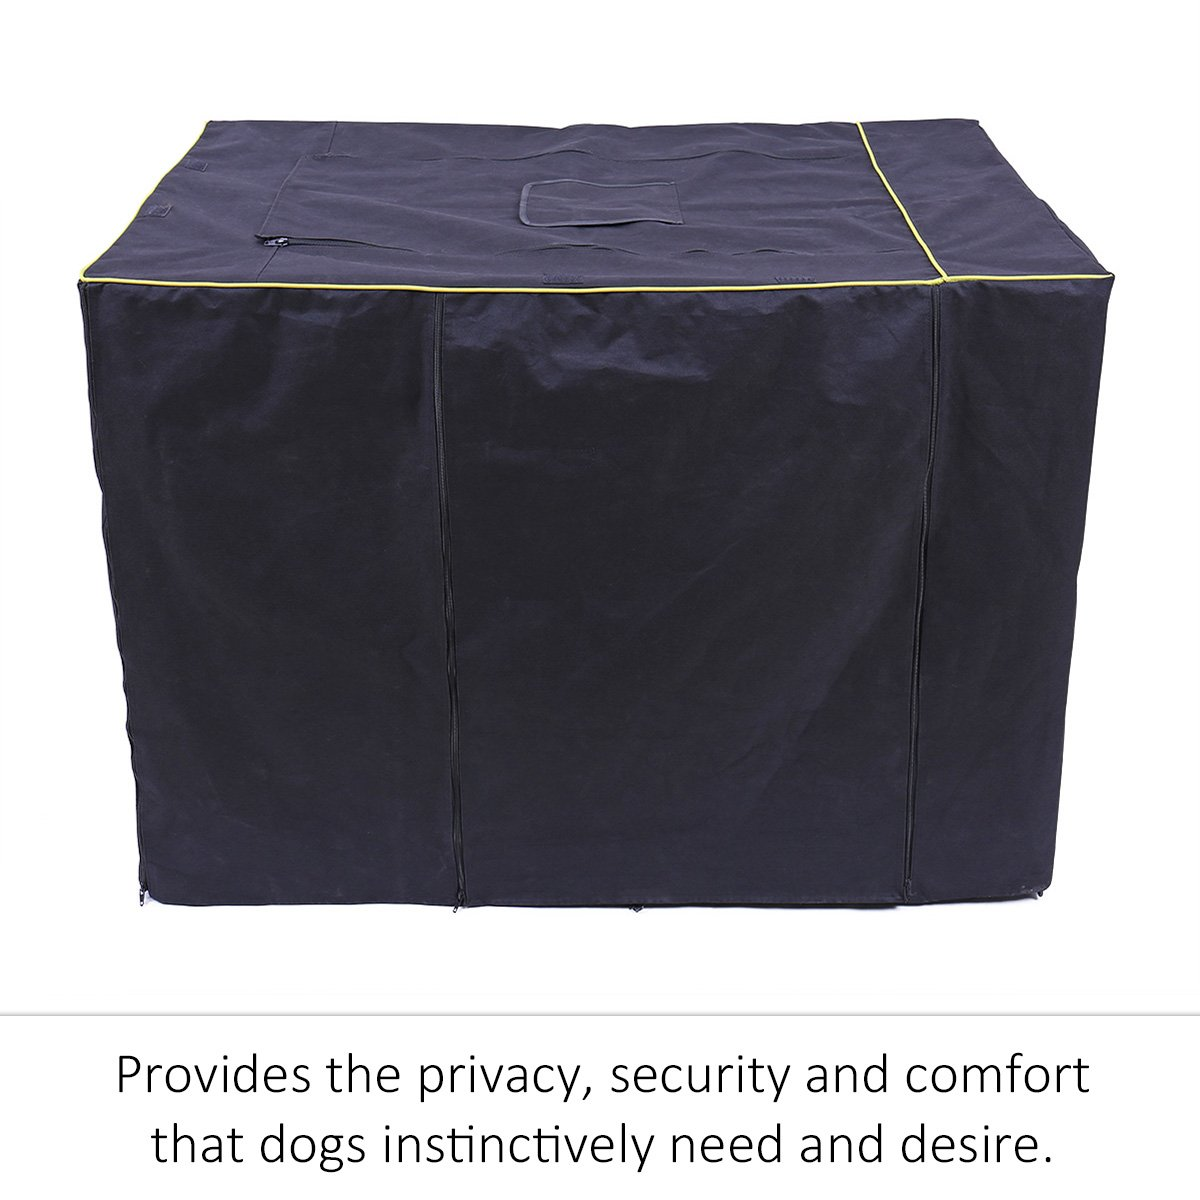 Speedy Pet Waterproof Dog Kennel Covers Durable Windproof Dust-Proof Crate Cover Indoor/Outdoor for Dog Cage Black (2XL(47.6'' x 30.3'' x 32.3''), Black) by Speedy Pet (Image #3)